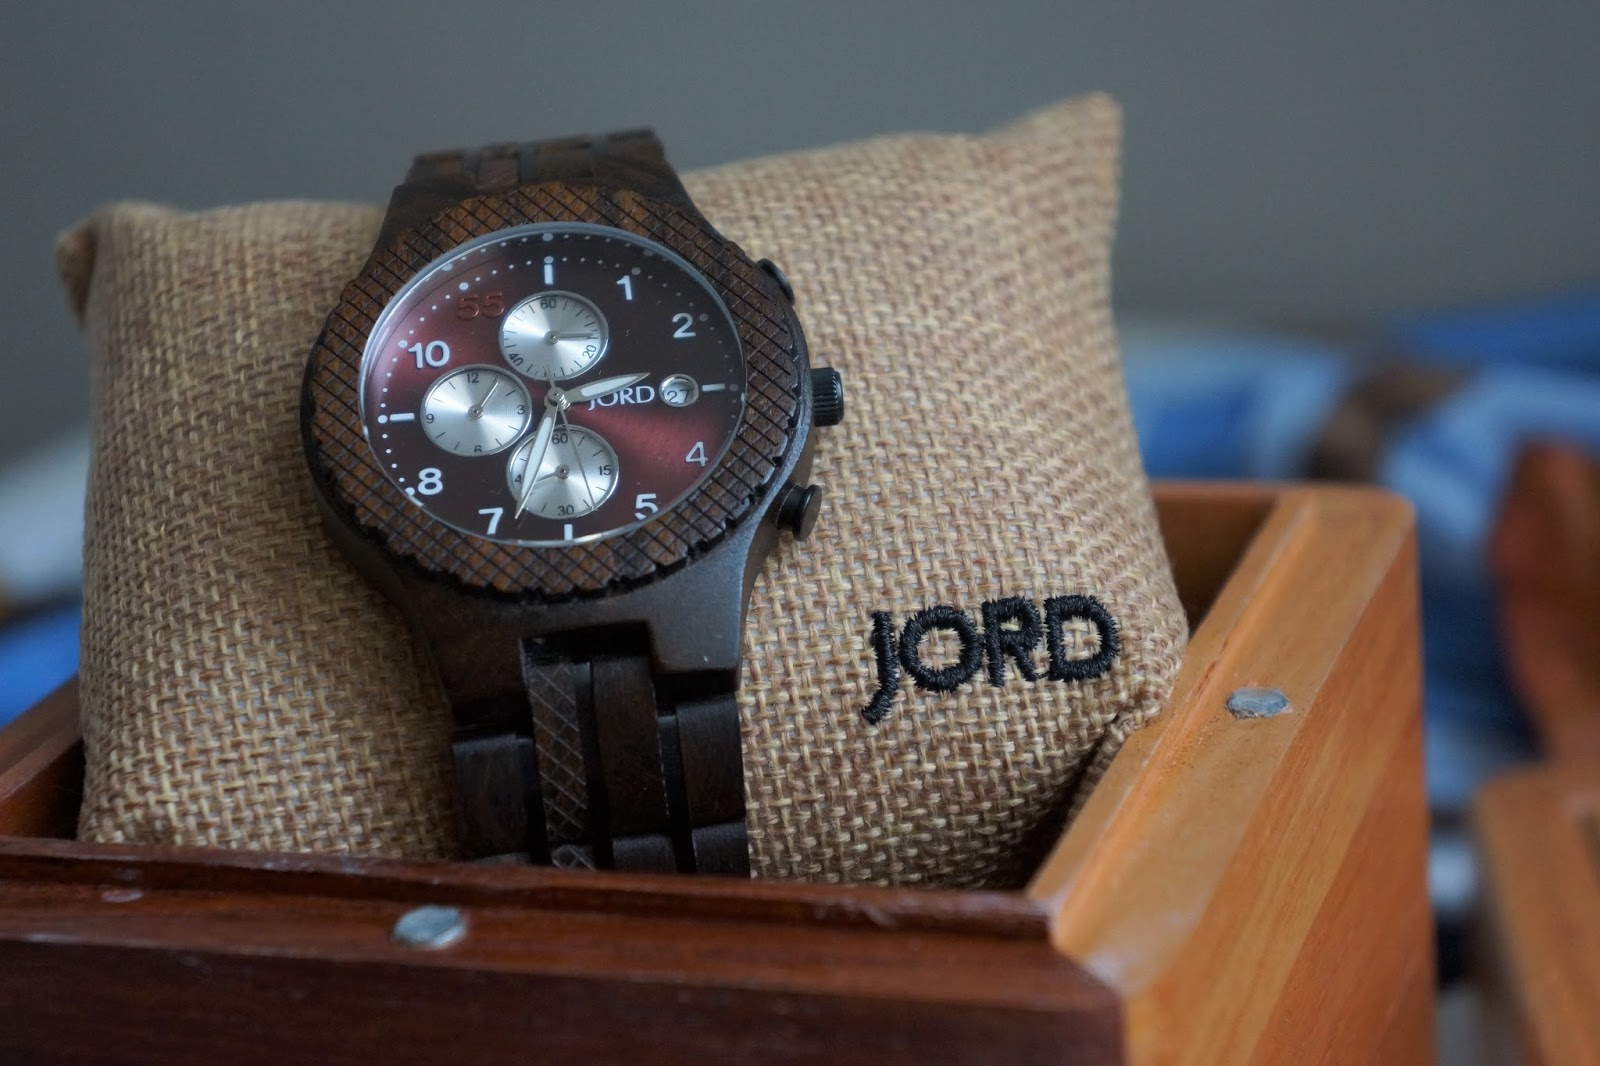 JORD Conway watch in a wooden gift box